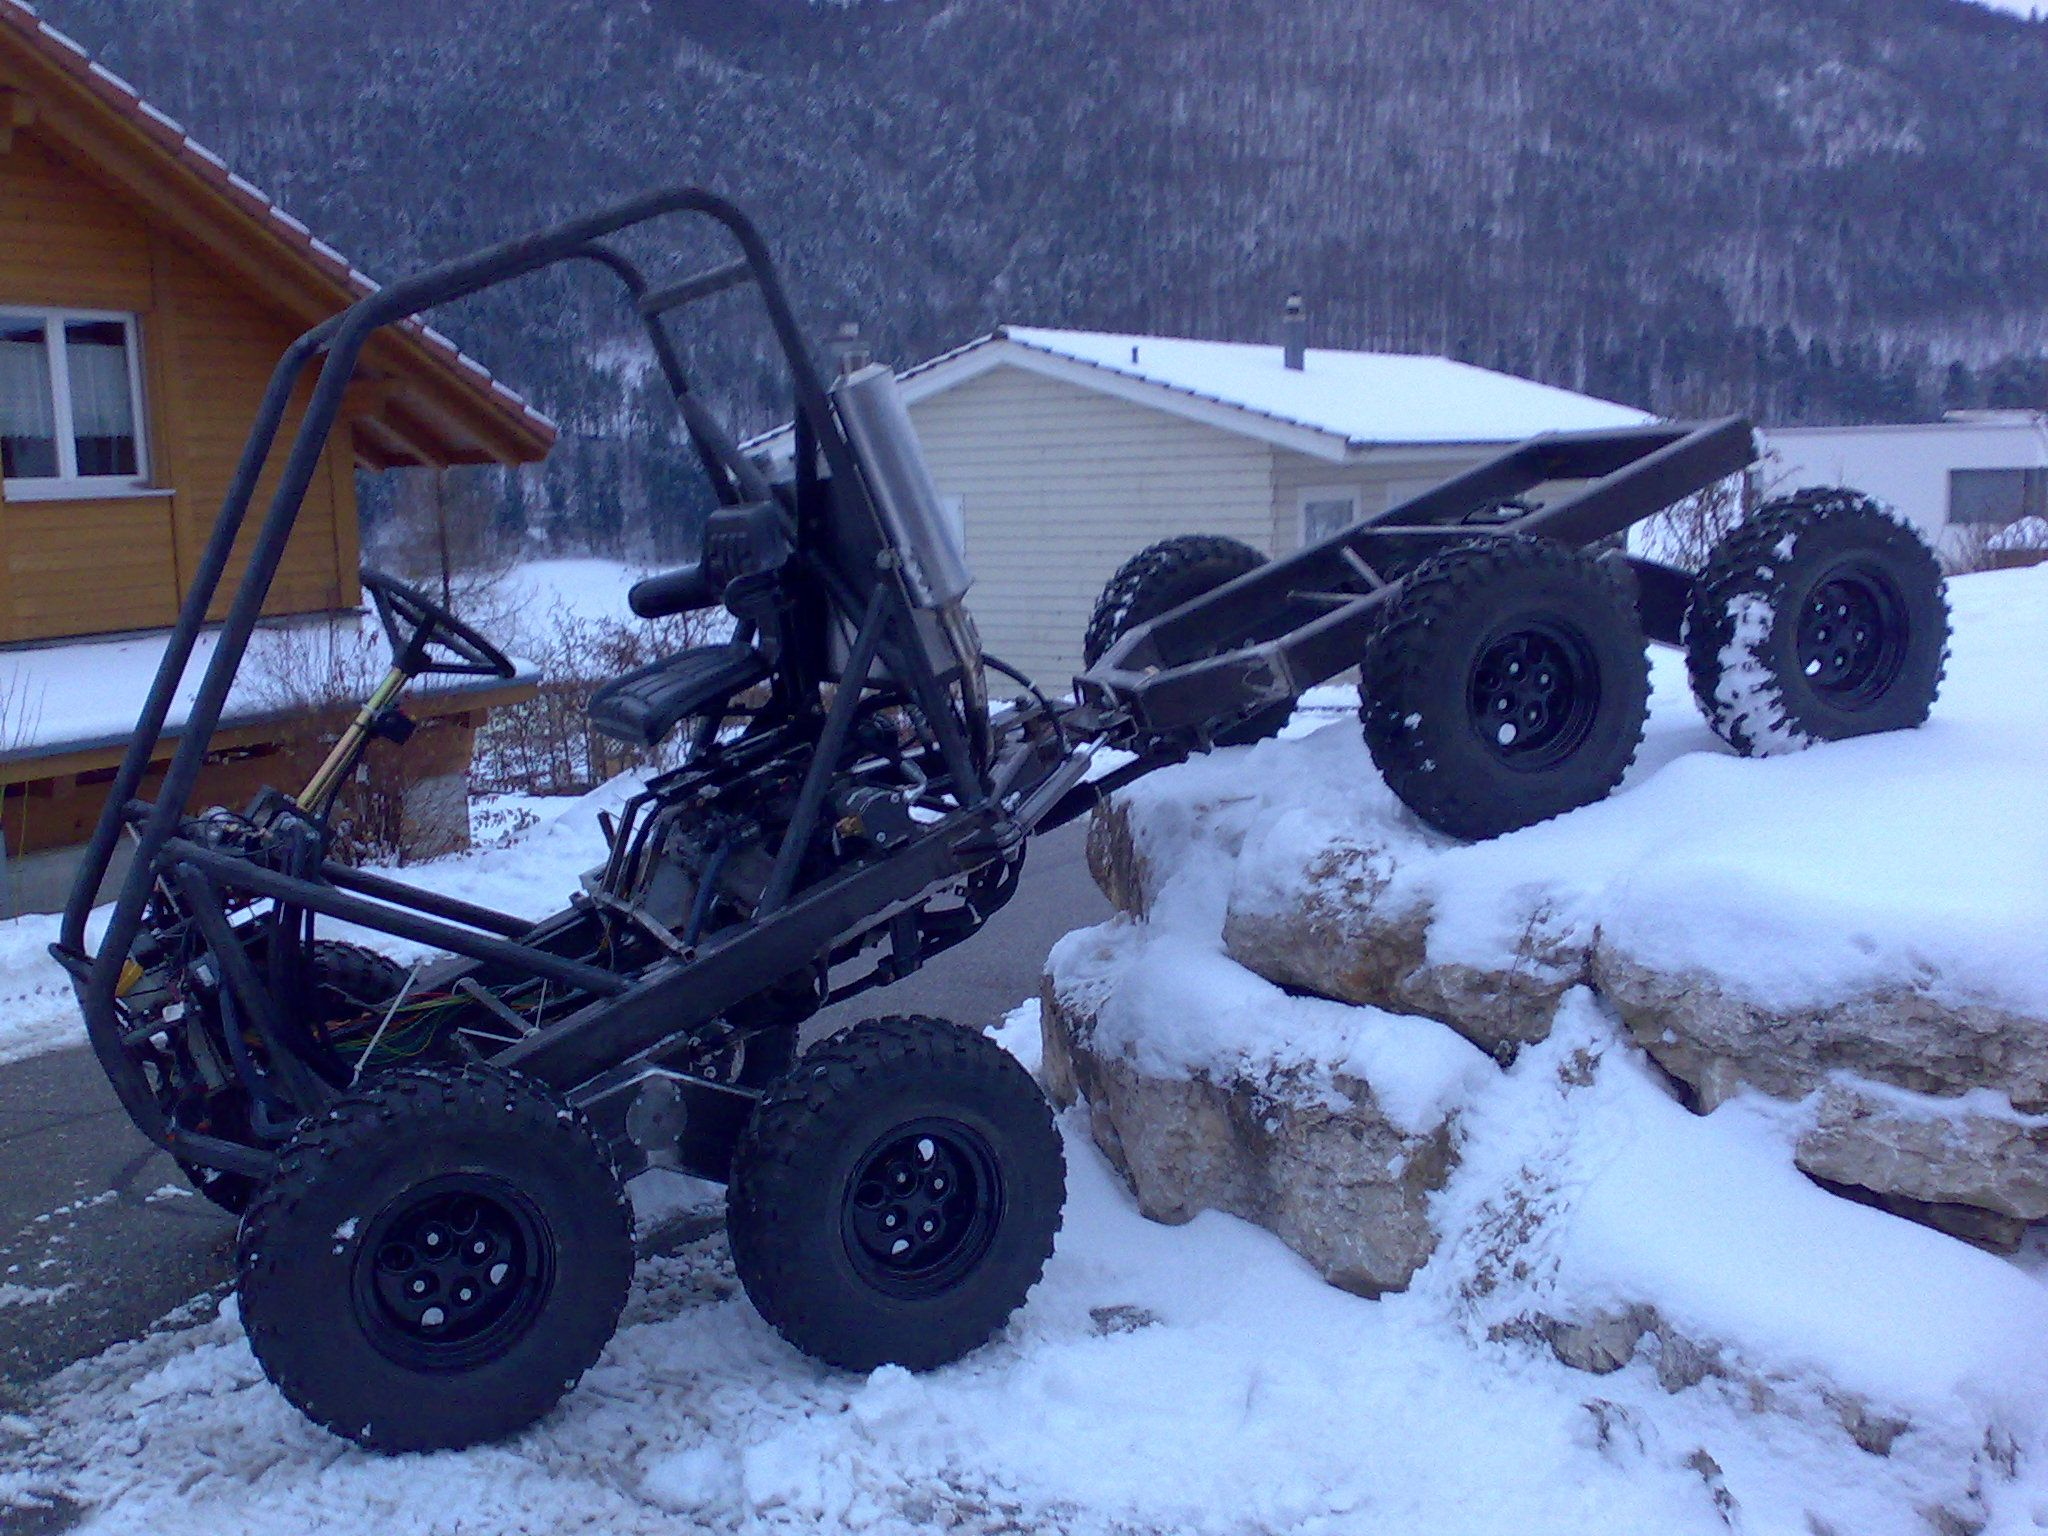 how to build a 4x4 an 8x8 atv pinterest 4x4 atv and vehicle. Black Bedroom Furniture Sets. Home Design Ideas